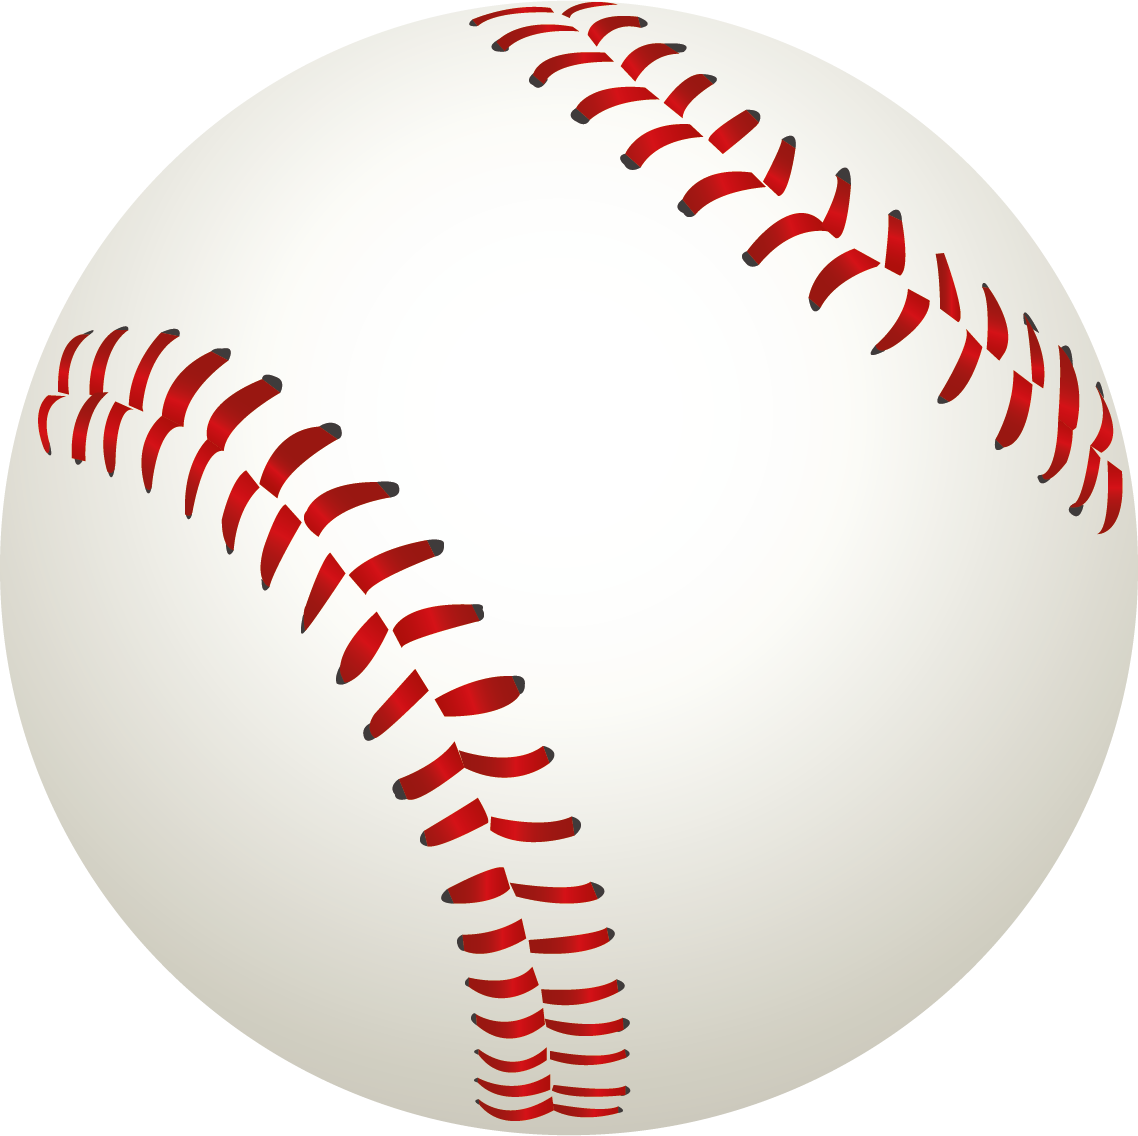 Baseball Bat And Ball Clipart | Clipart Panda - Free Clipart Images